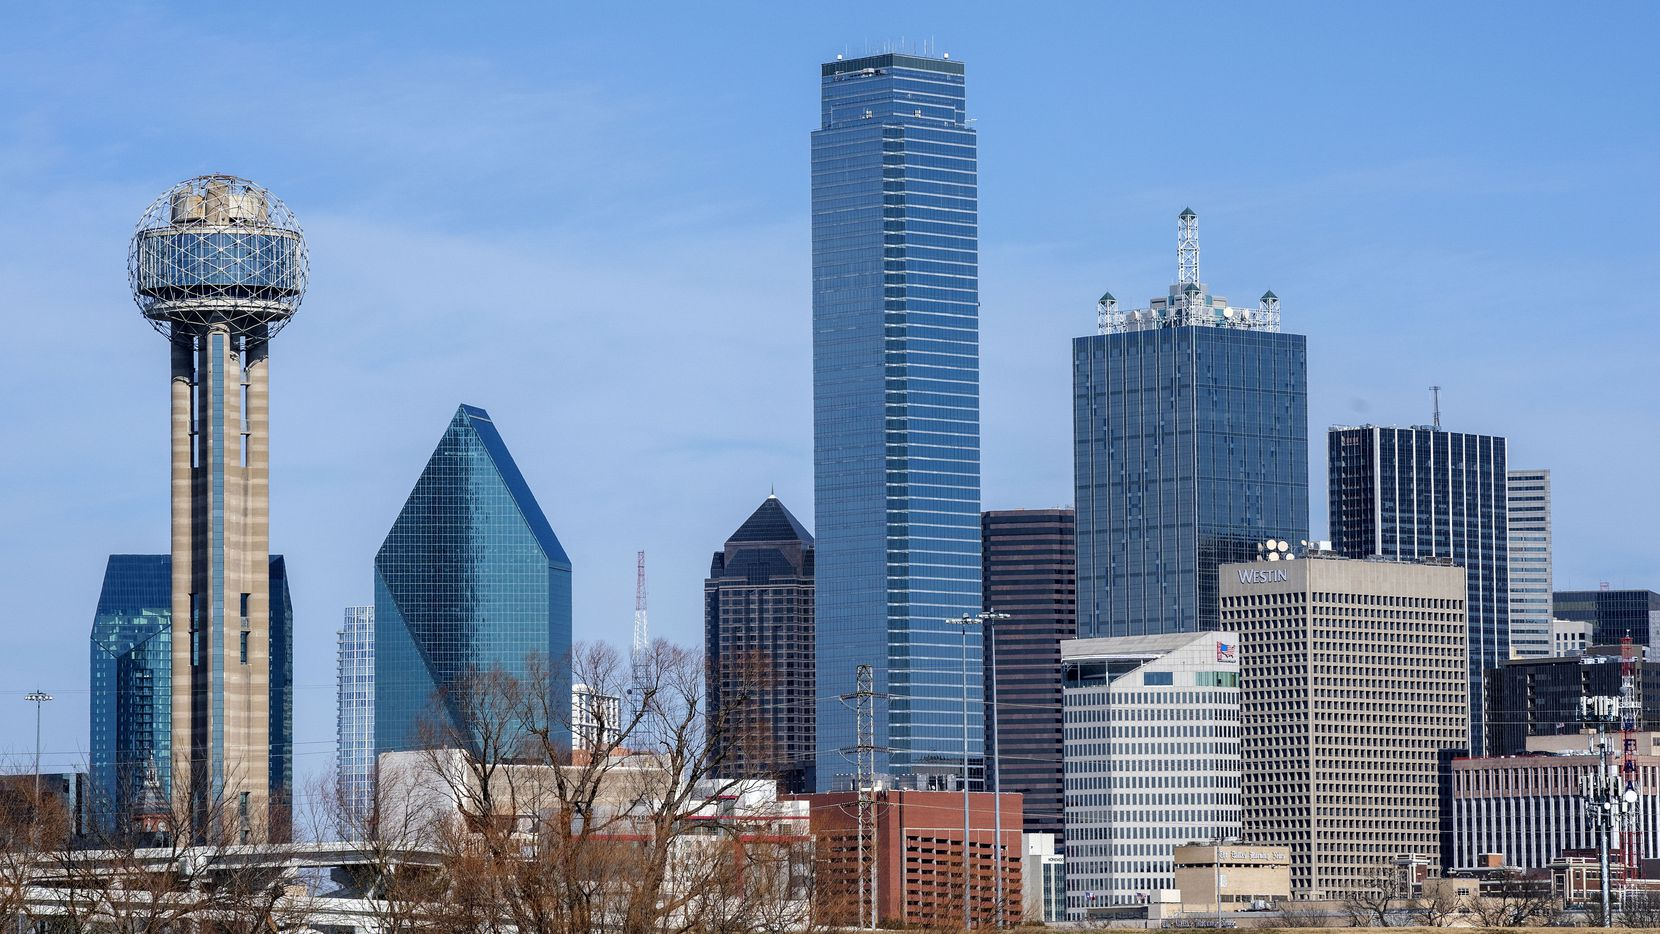 Renaissance Tower, right, stands next to Bank of America Plaza, center, as it rises out of the Dallas skyline, Thursday, January 14, 2021 in downtown Dallas.